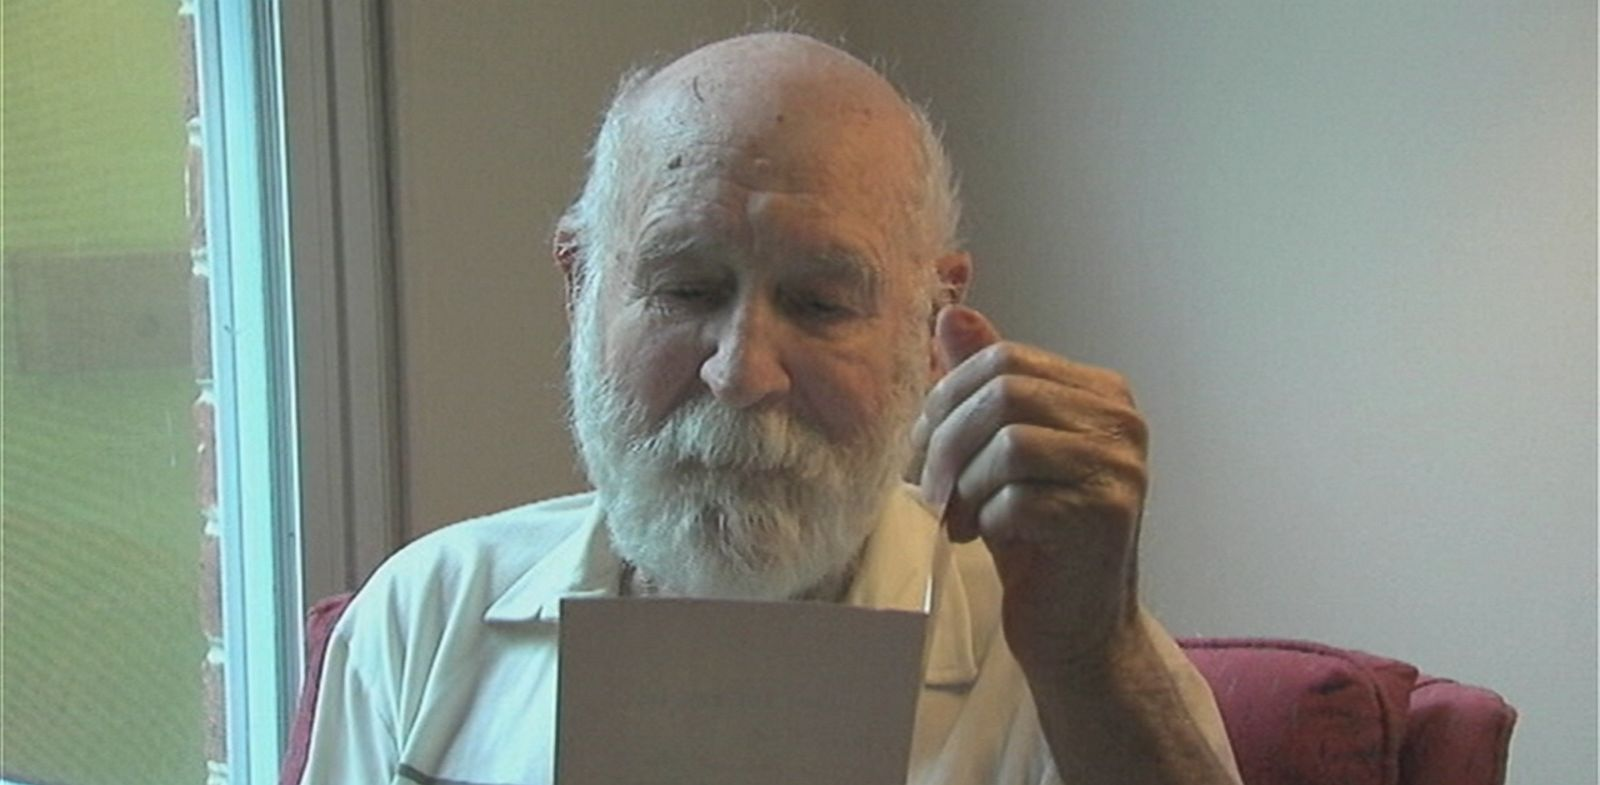 VIDEO: Duane Schrock, 87, was recently given a card originally mailed by his son in 1989.